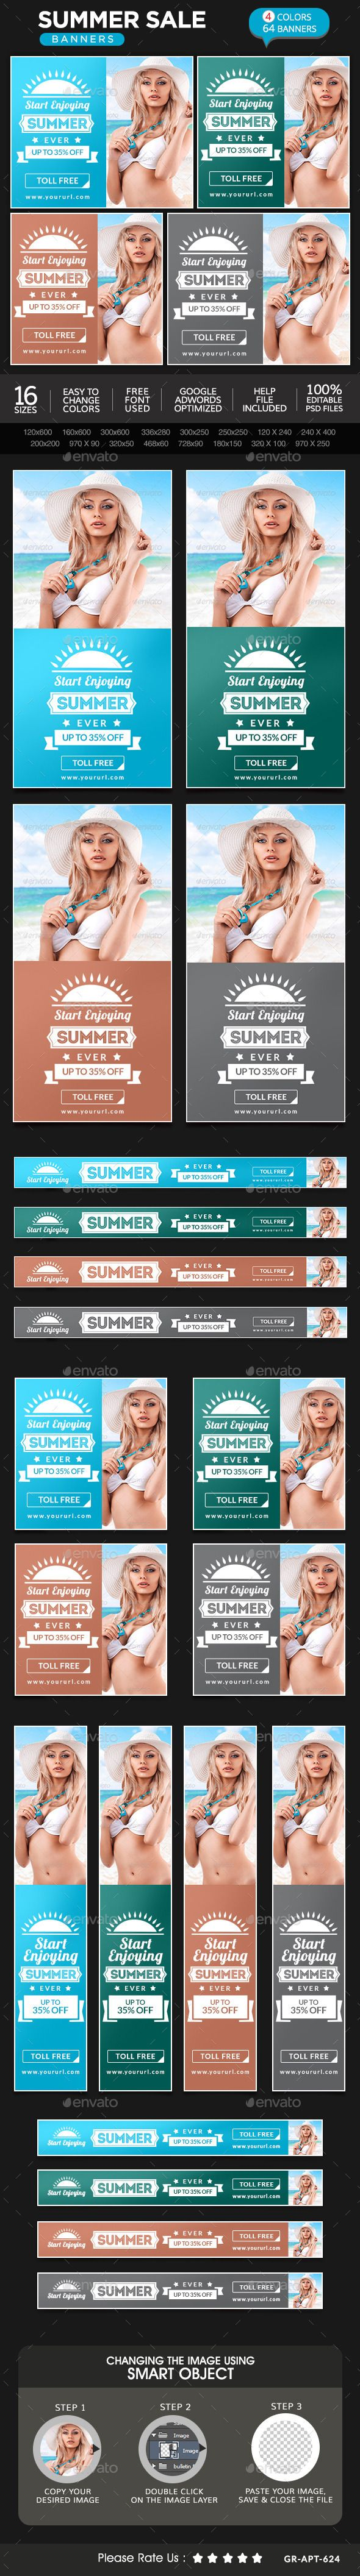 Summer Sale Banners Design Template #webbanners Download: http://graphicriver.net/item/summer-sale-banners/11450596?ref=ksioks